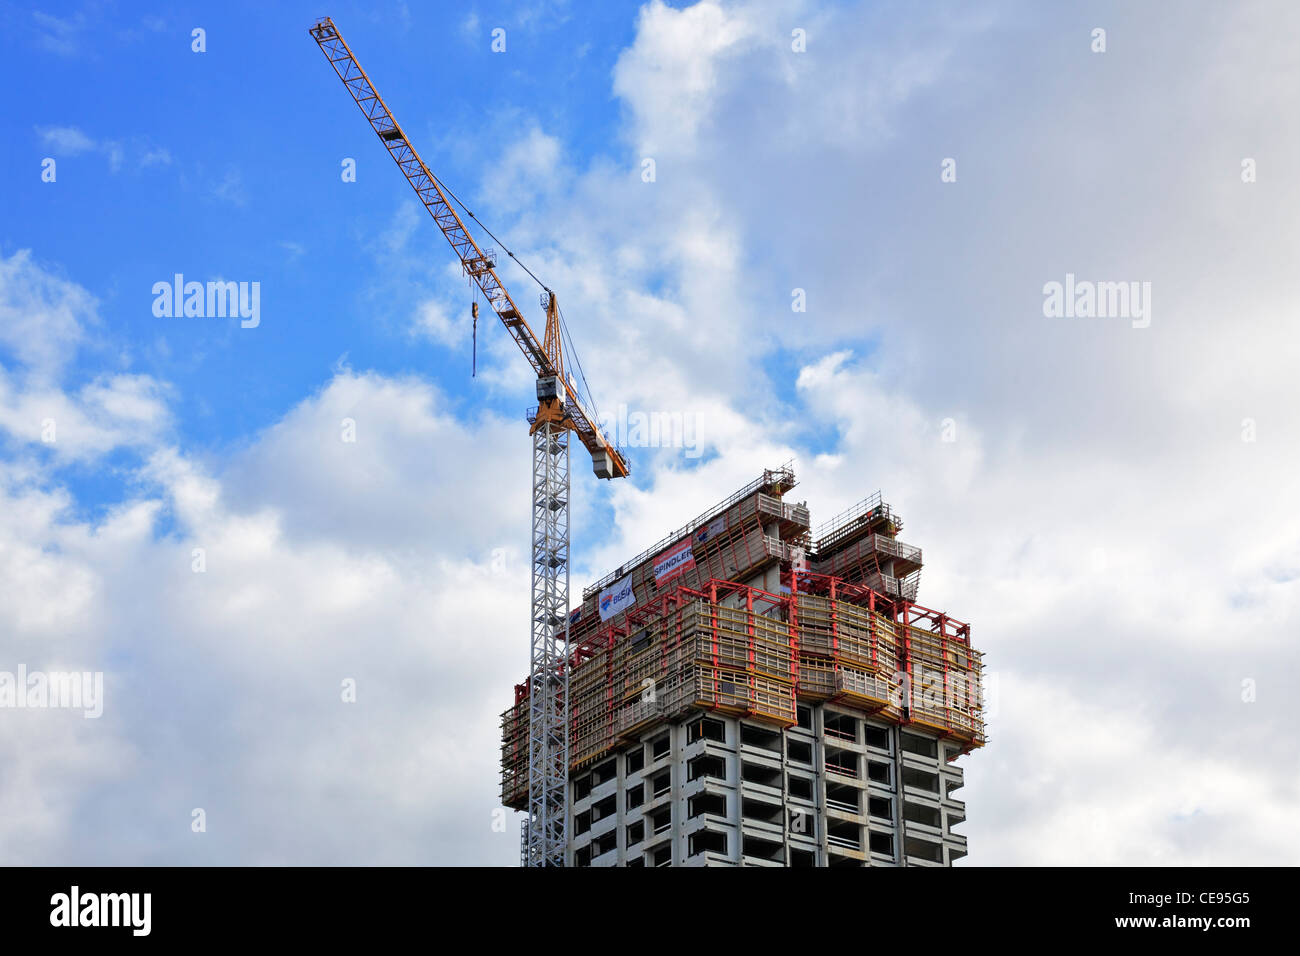 High-rise building, construction site with a crane, Kop van Zuid, Rotterdam, Holland, Netherlands, Europe - Stock Image